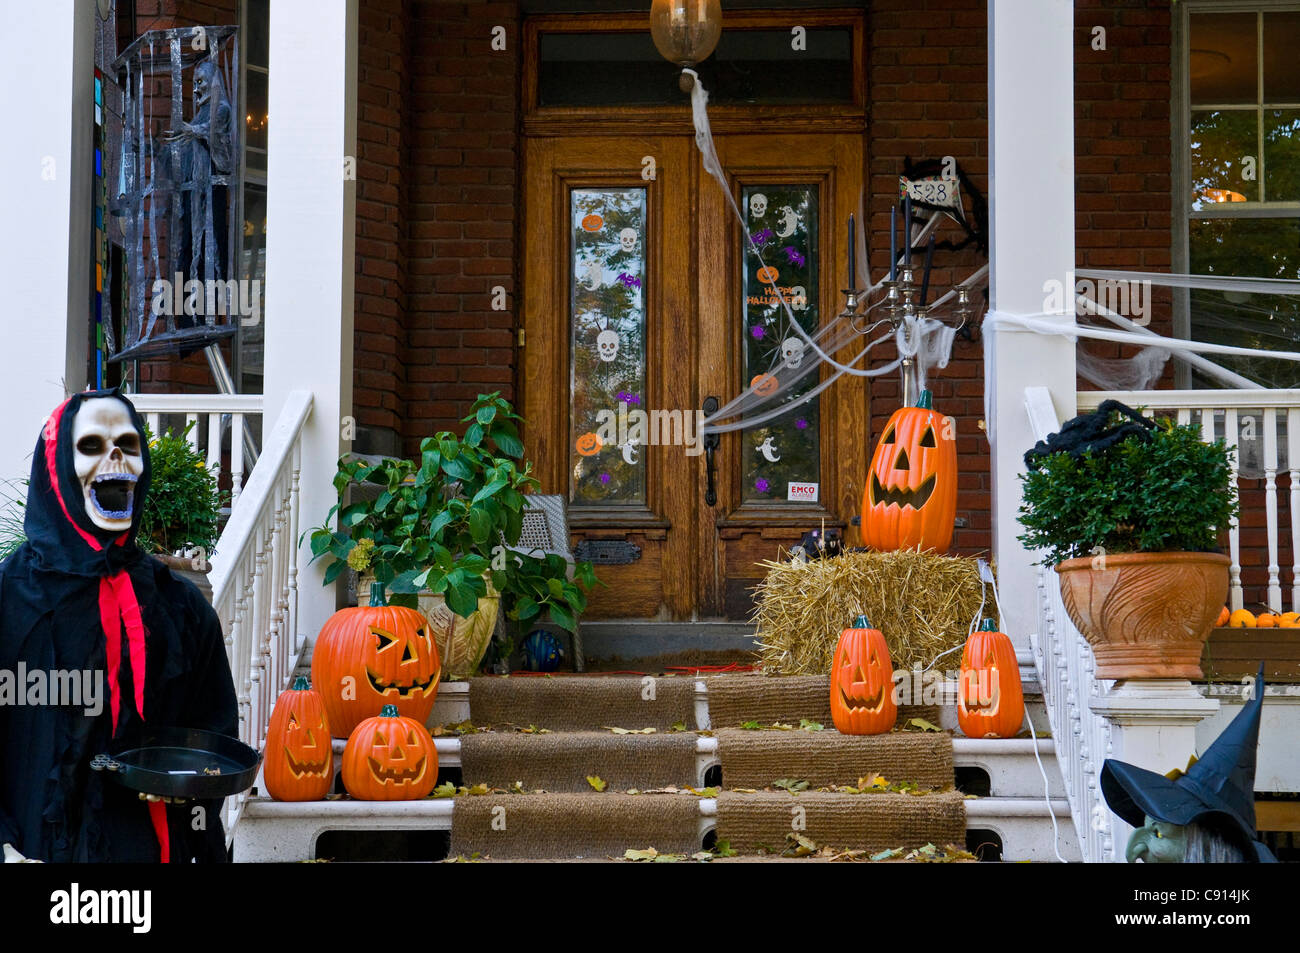 House Decorated For Halloween Montreal Canada Stock Photo Home Decorators Catalog Best Ideas of Home Decor and Design [homedecoratorscatalog.us]